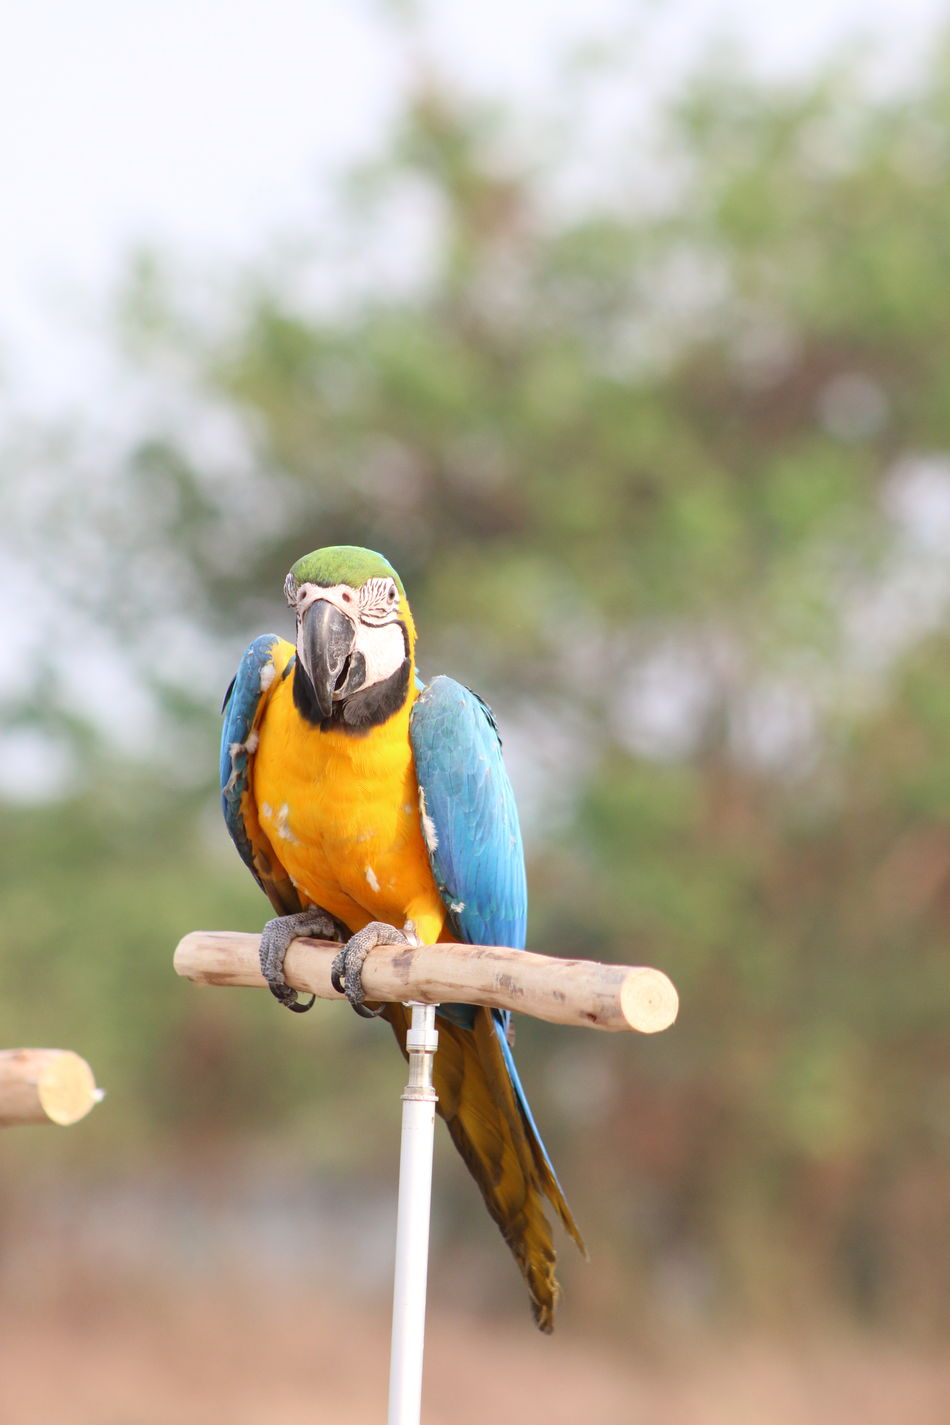 Macaw Macaw Parrot macaw Parrot